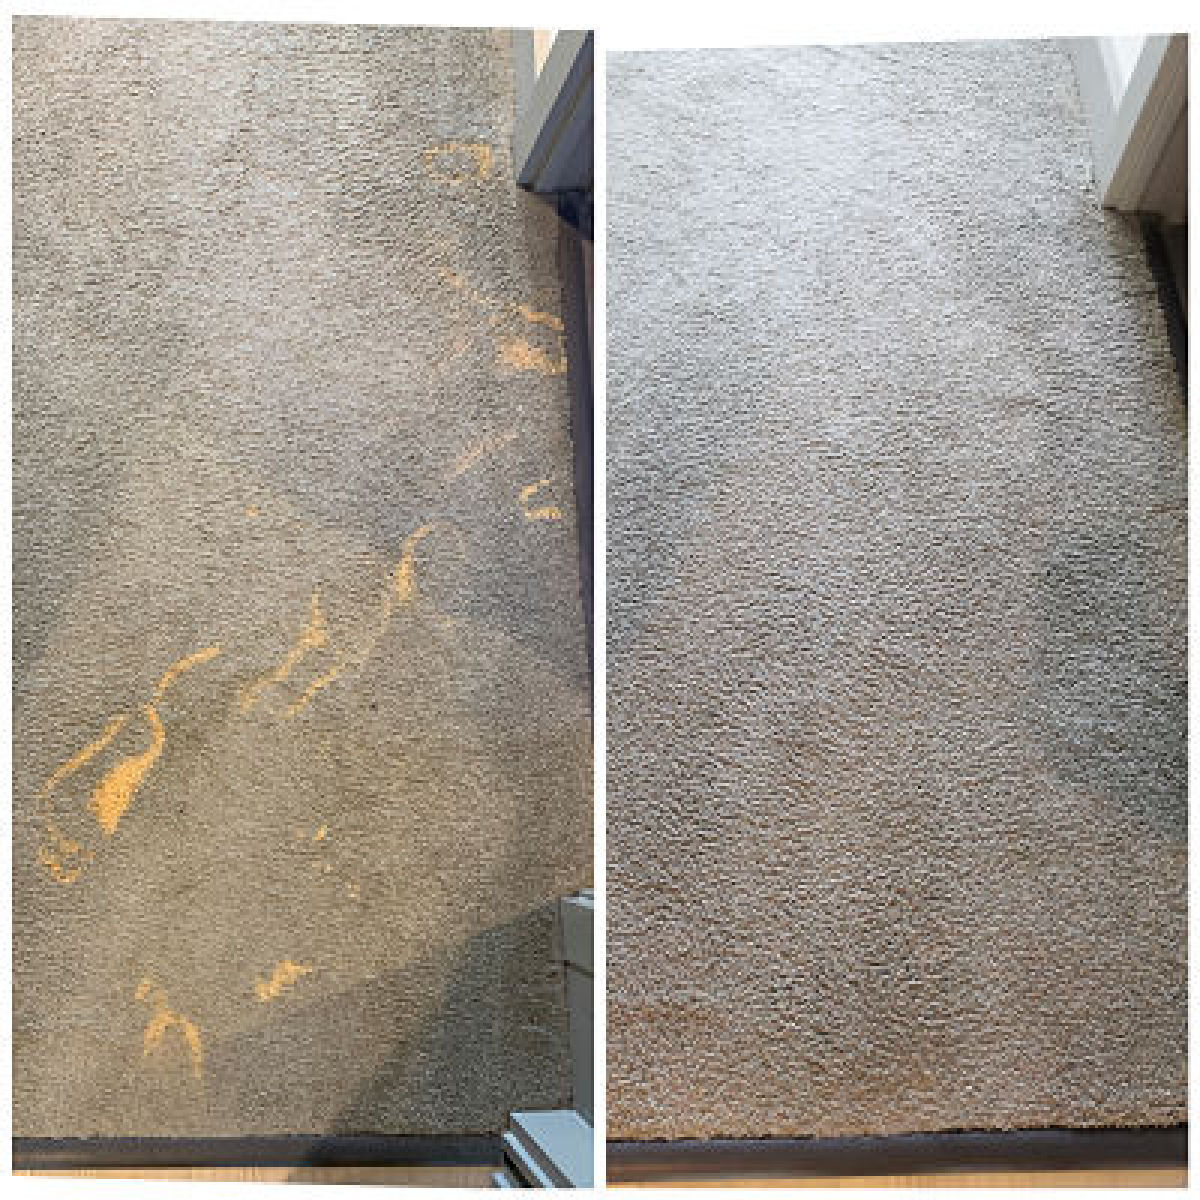 bleach stain repair